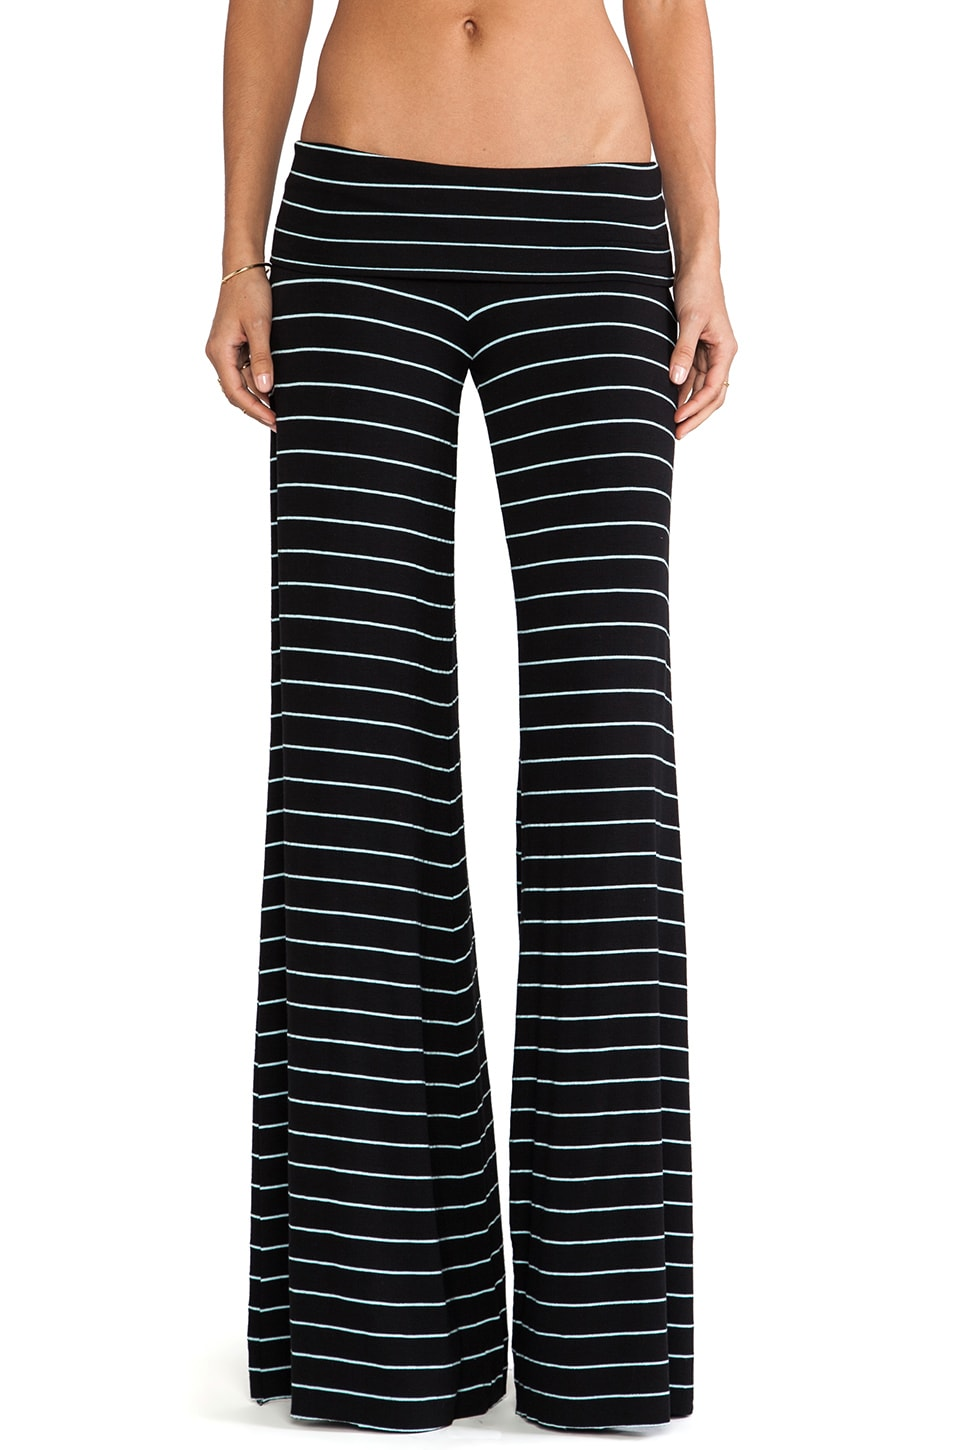 Saint Grace Carol Moby Stripe Pant in Black & Icee